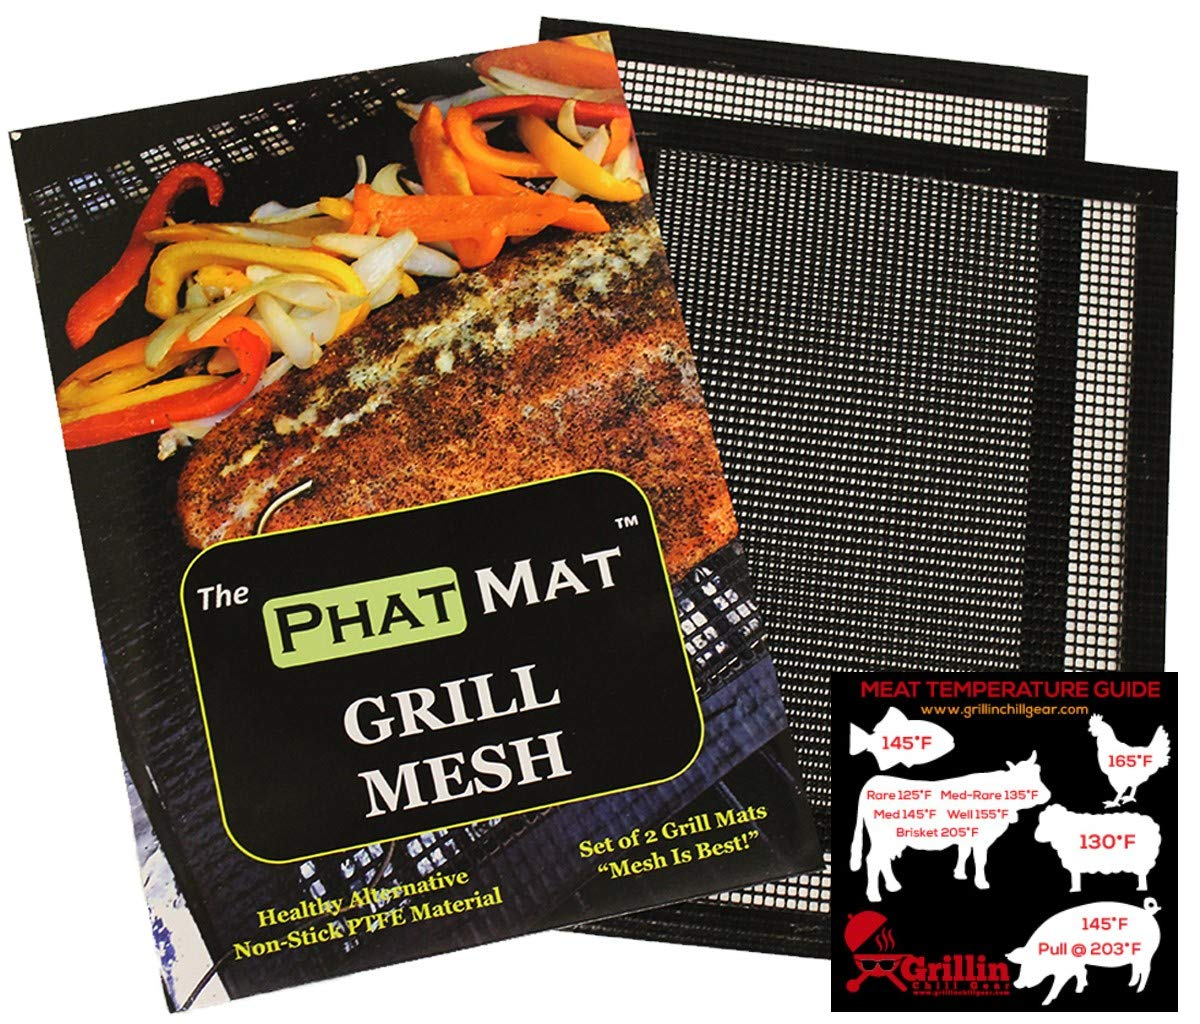 PhatMat Non Stick Grill Mesh Mats - Set of 2 - Nonstick Heavy Duty BBQ Grilling & Baking Accessories for Traeger, Rec Tec, Green Mountain, Smoker & Oven - 16 inches x 11 inches - Free Temp Guide by PhatMat